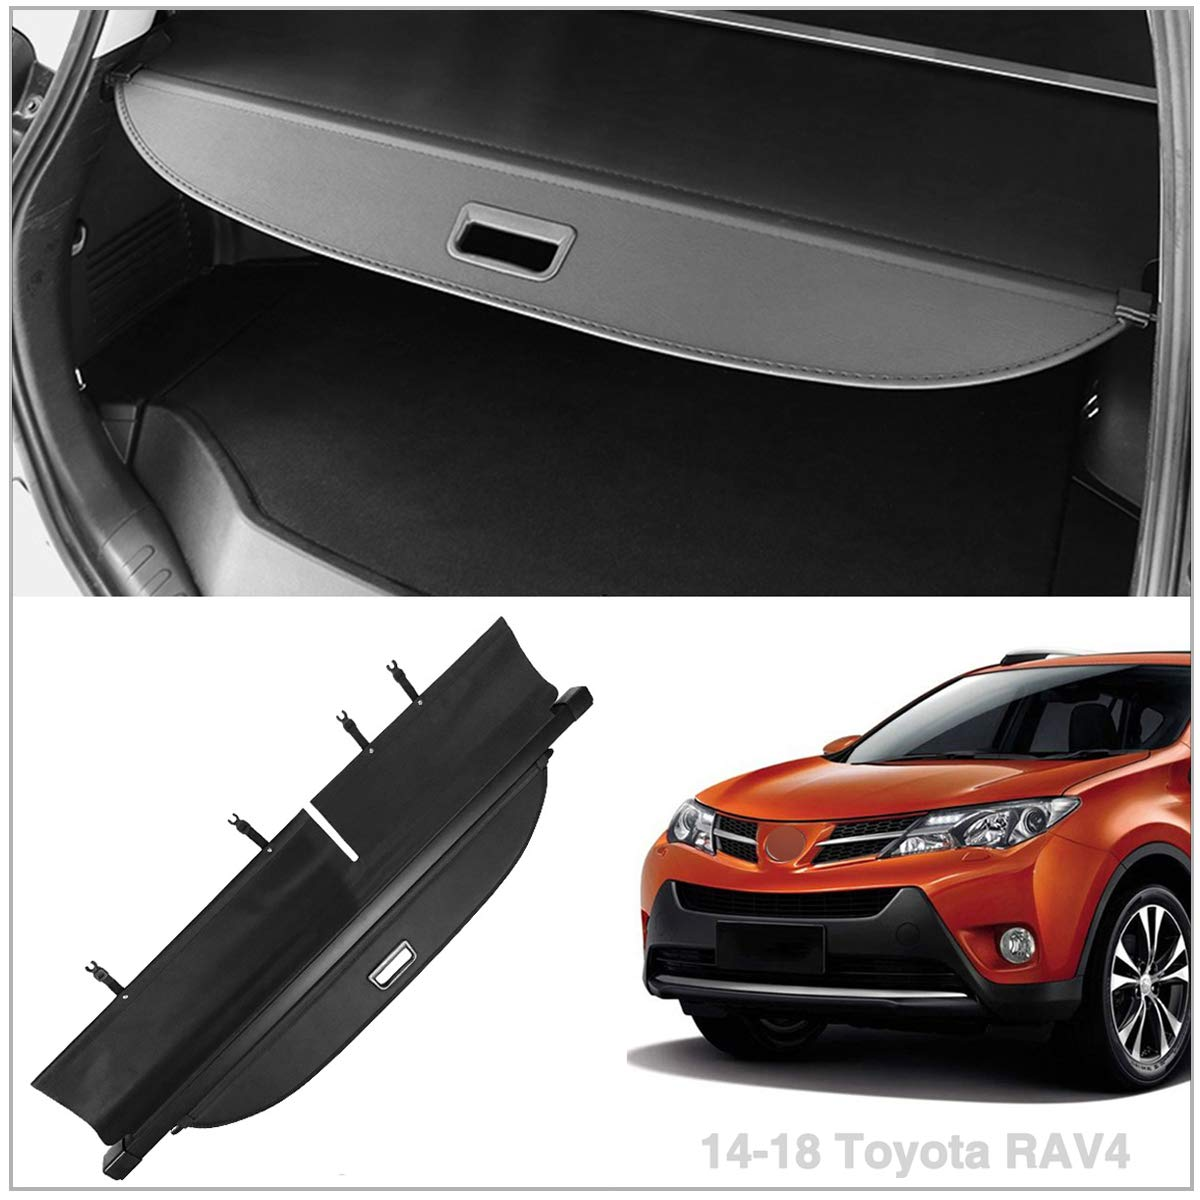 Autoxrun Black Cargo Cover fits 2014-2018 Toyota Rav4 Retractable Security Cover